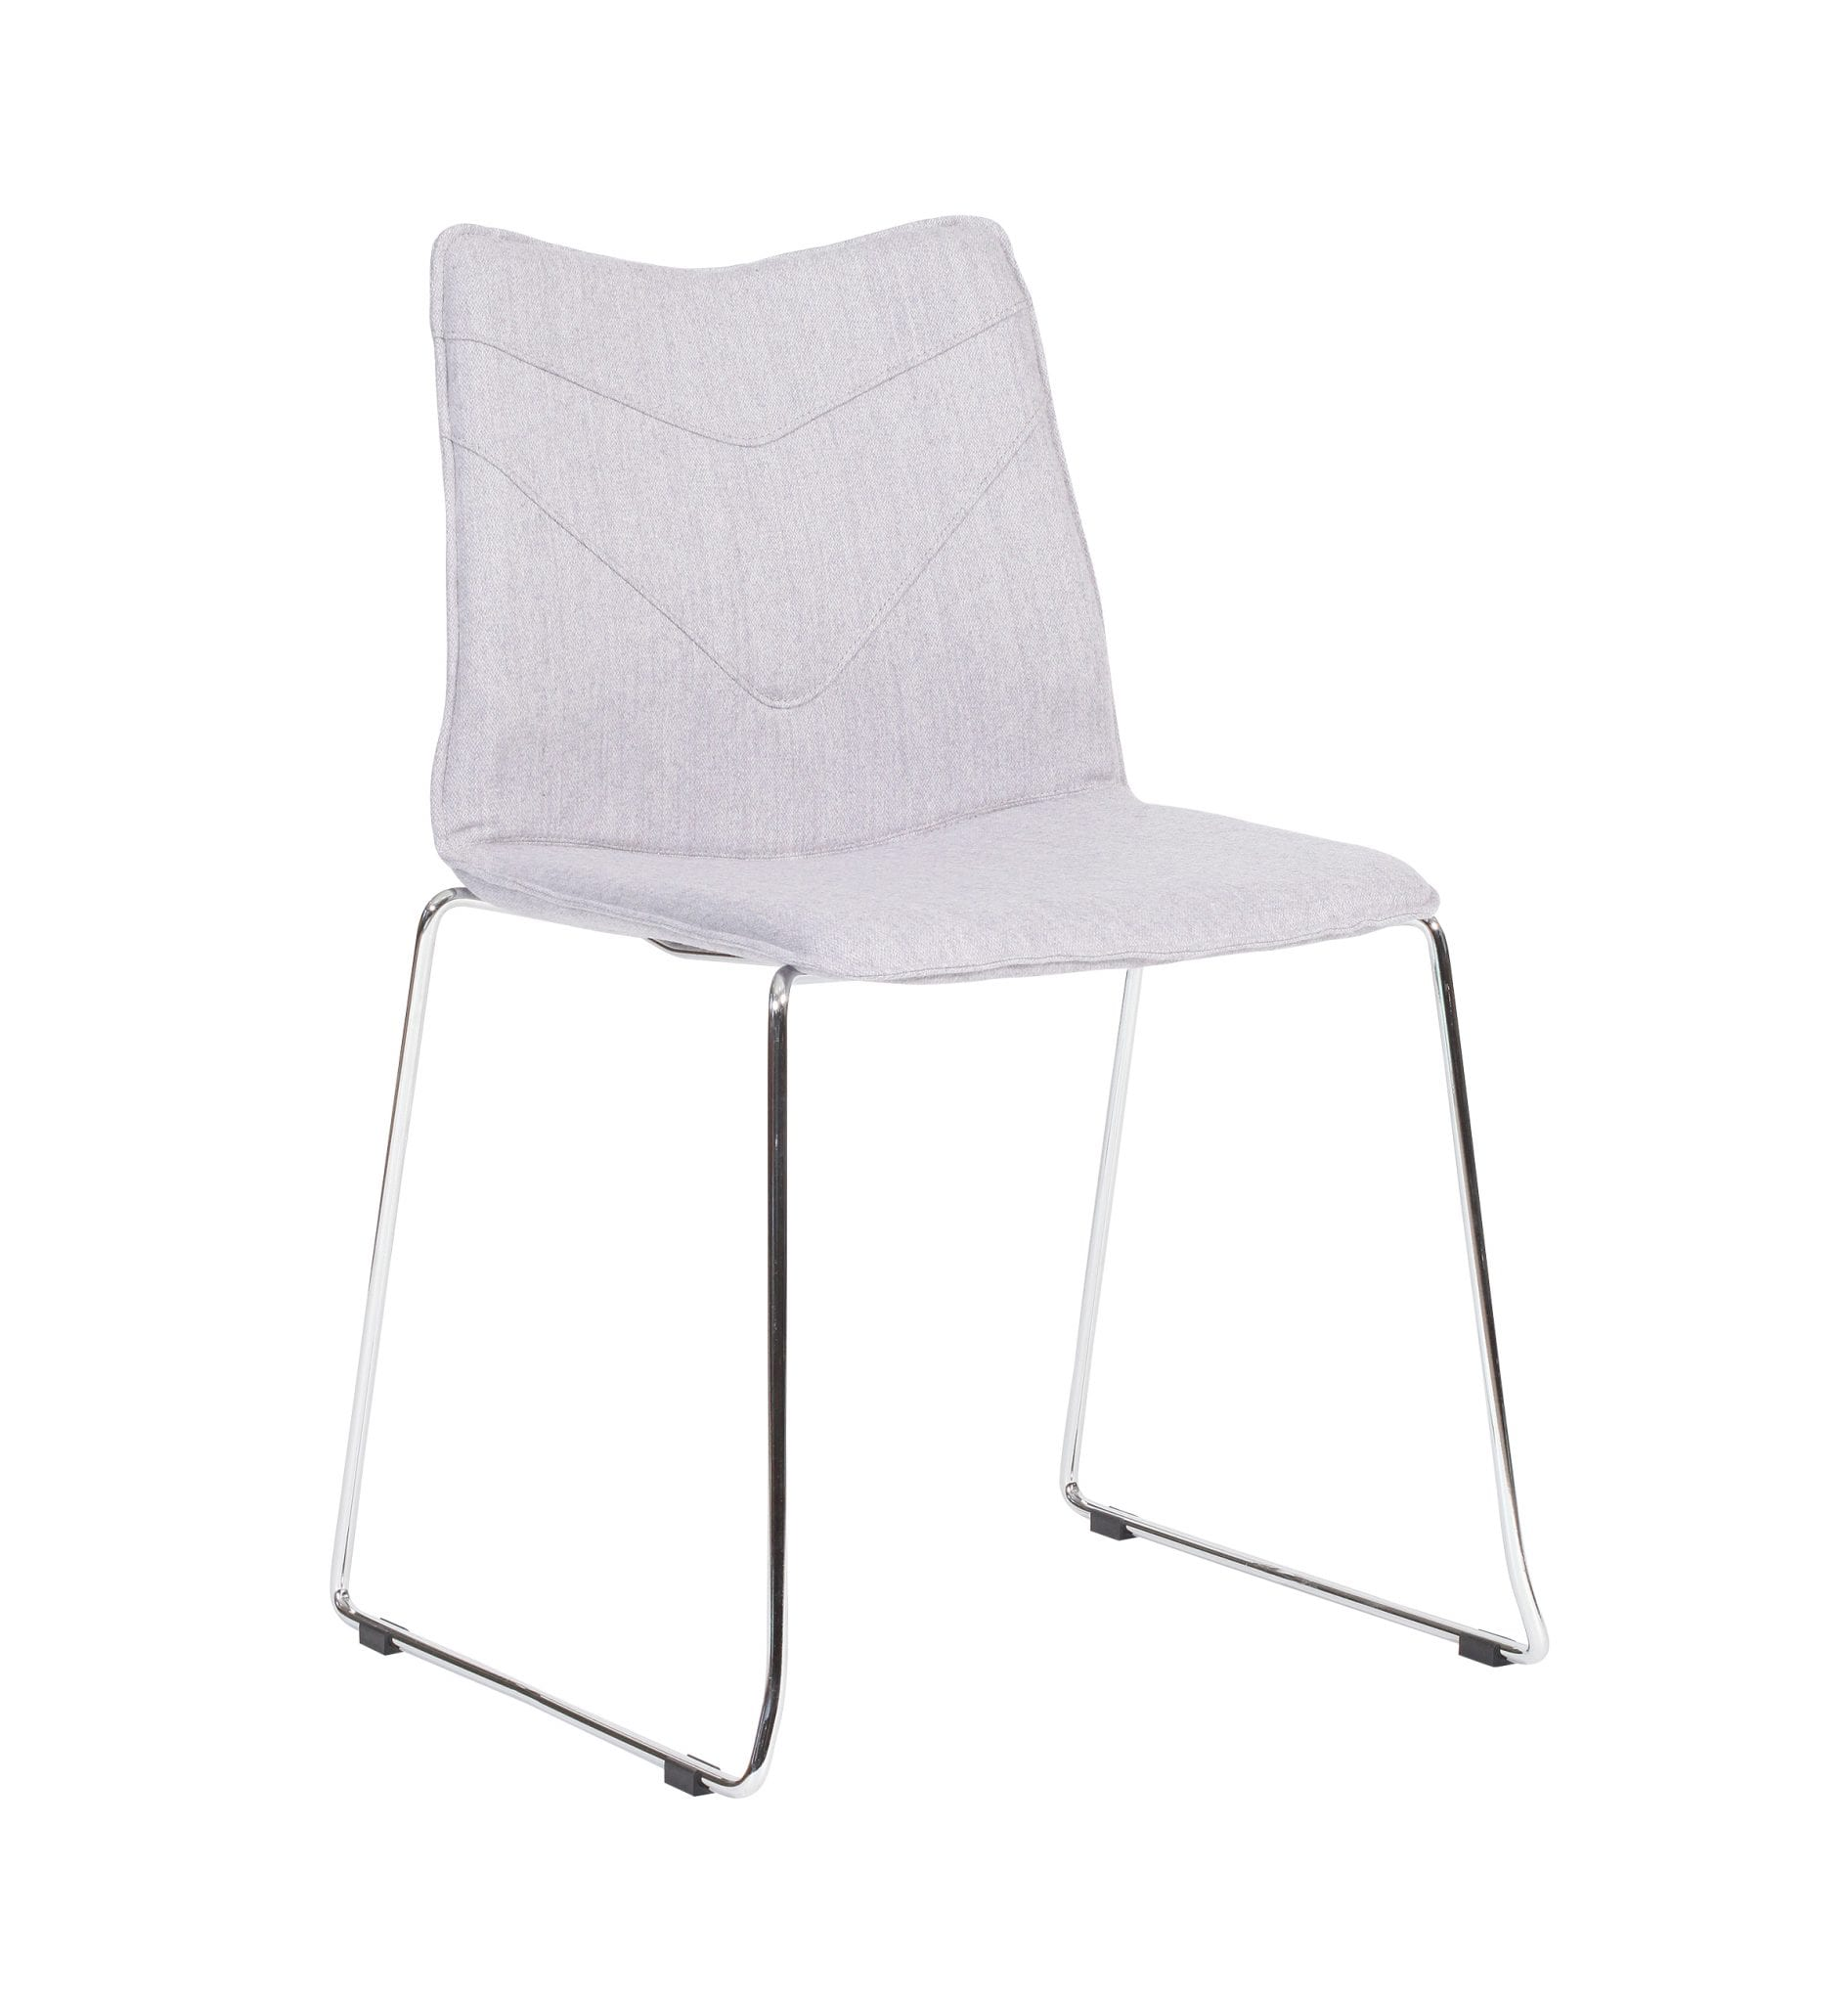 TV12 – TuVee range - Stylish stackable chrome skid framed chair